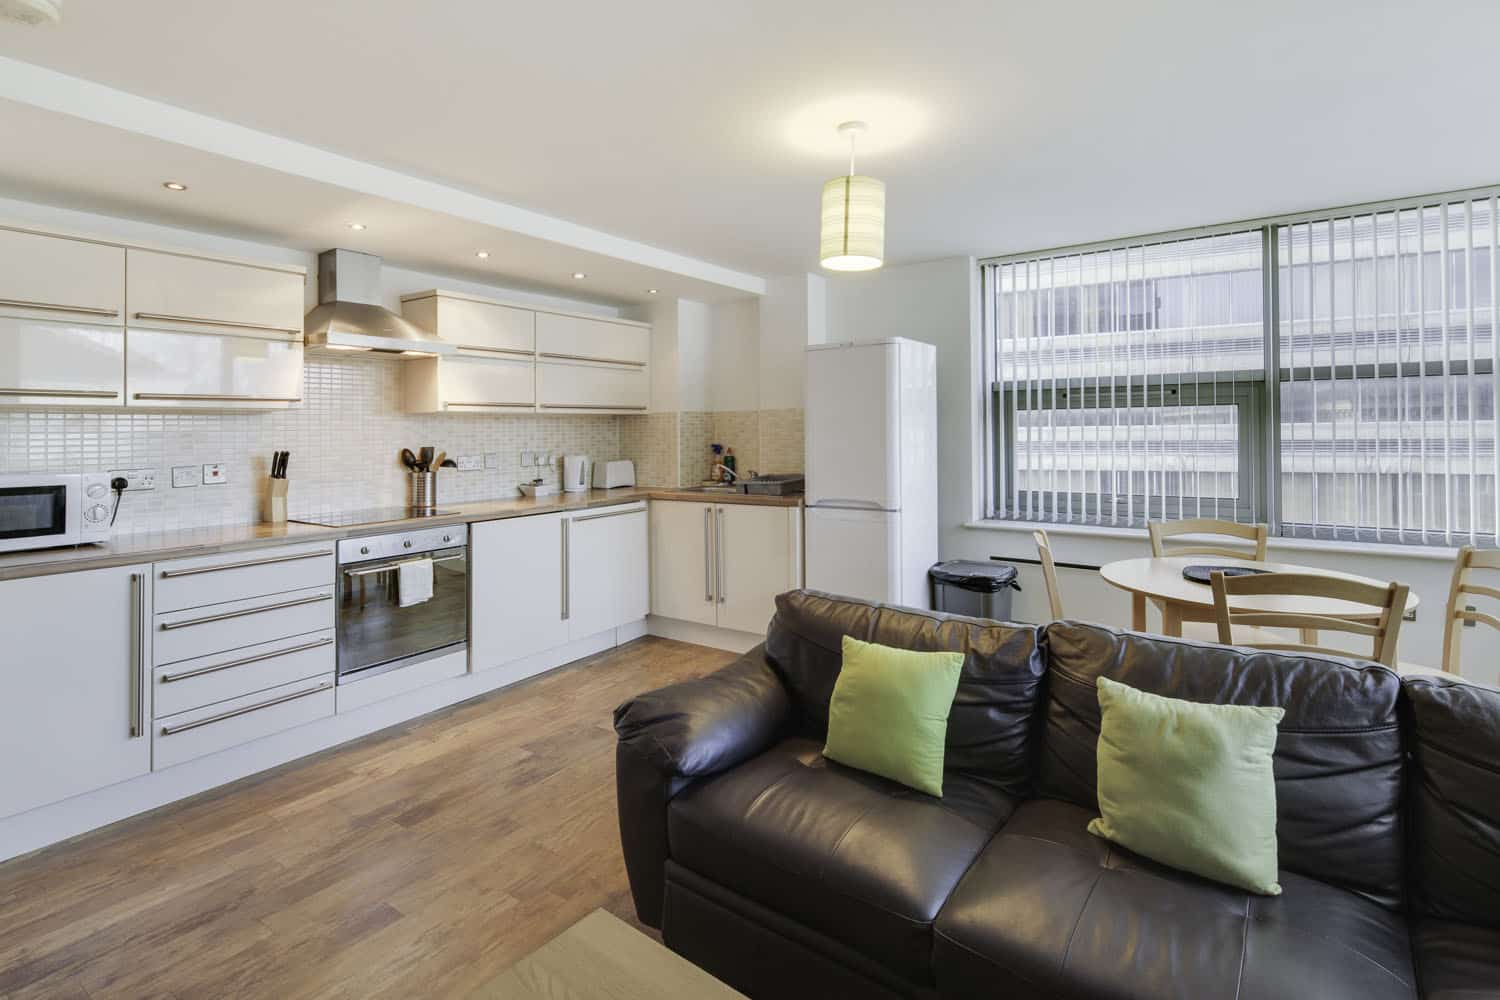 2 bed serviced apartment Leicester - Kitchen